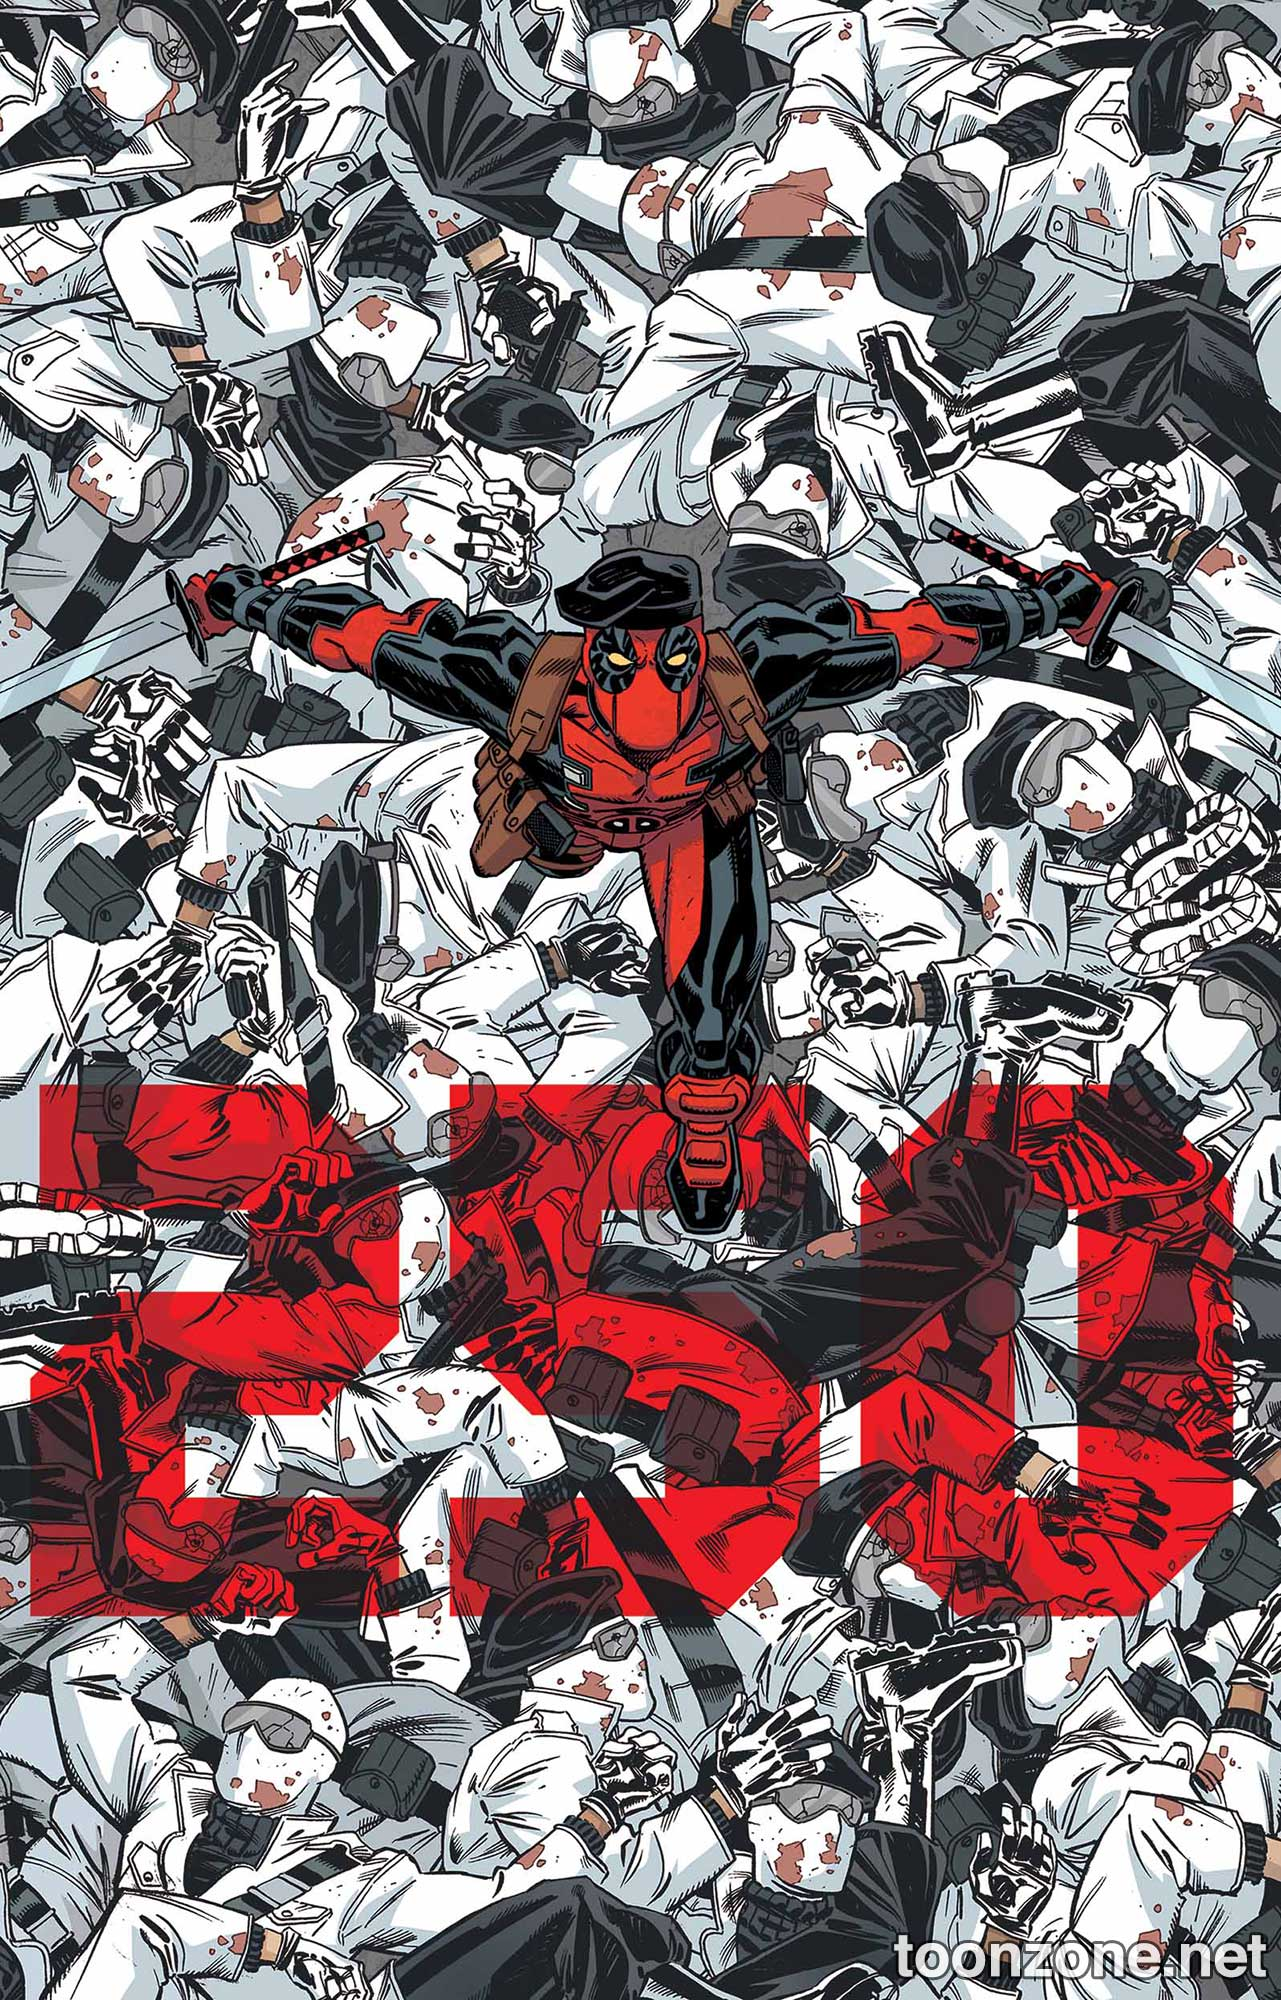 DEADPOOL NUMBER 250! (A.K.A. issue #45)